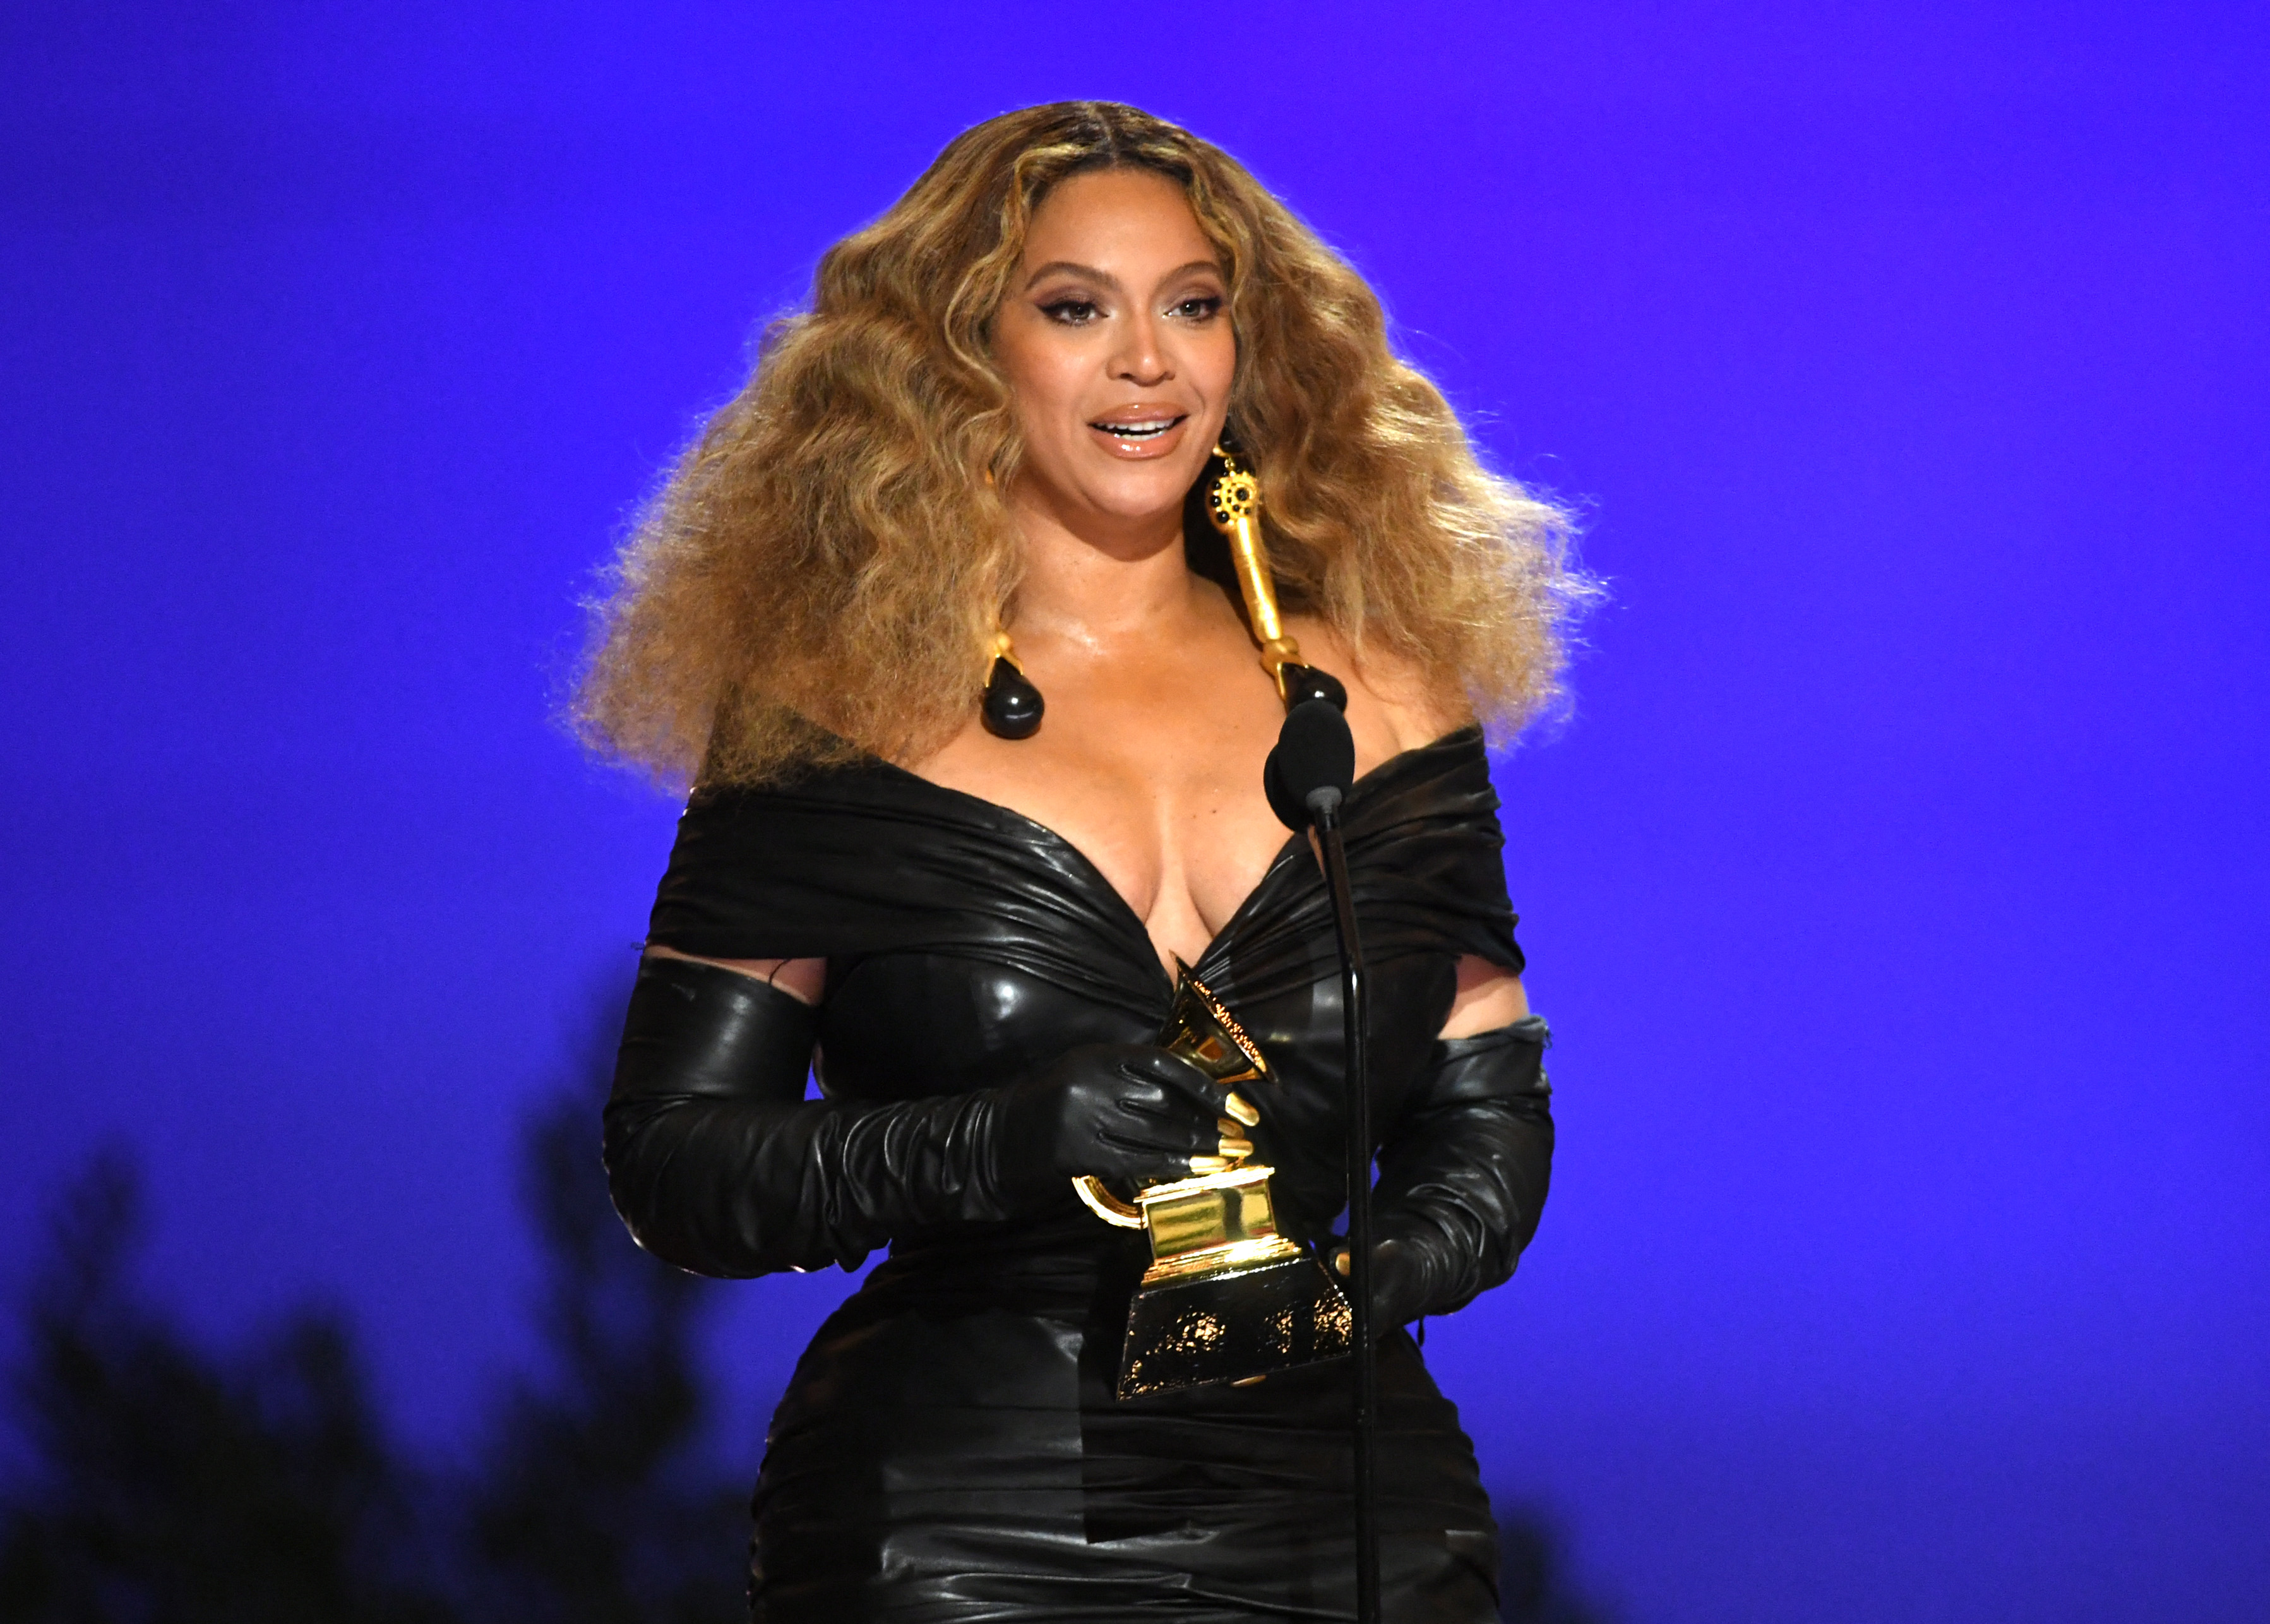 LOS ANGELES, CALIFORNIA - MARCH 14: Beyoncé accepts the Best R&B Performance award for 'Black Parade' onstage during the 63rd Annual GRAMMY Awards at Los Angeles Convention Center on March 14, 2021 in Los Angeles